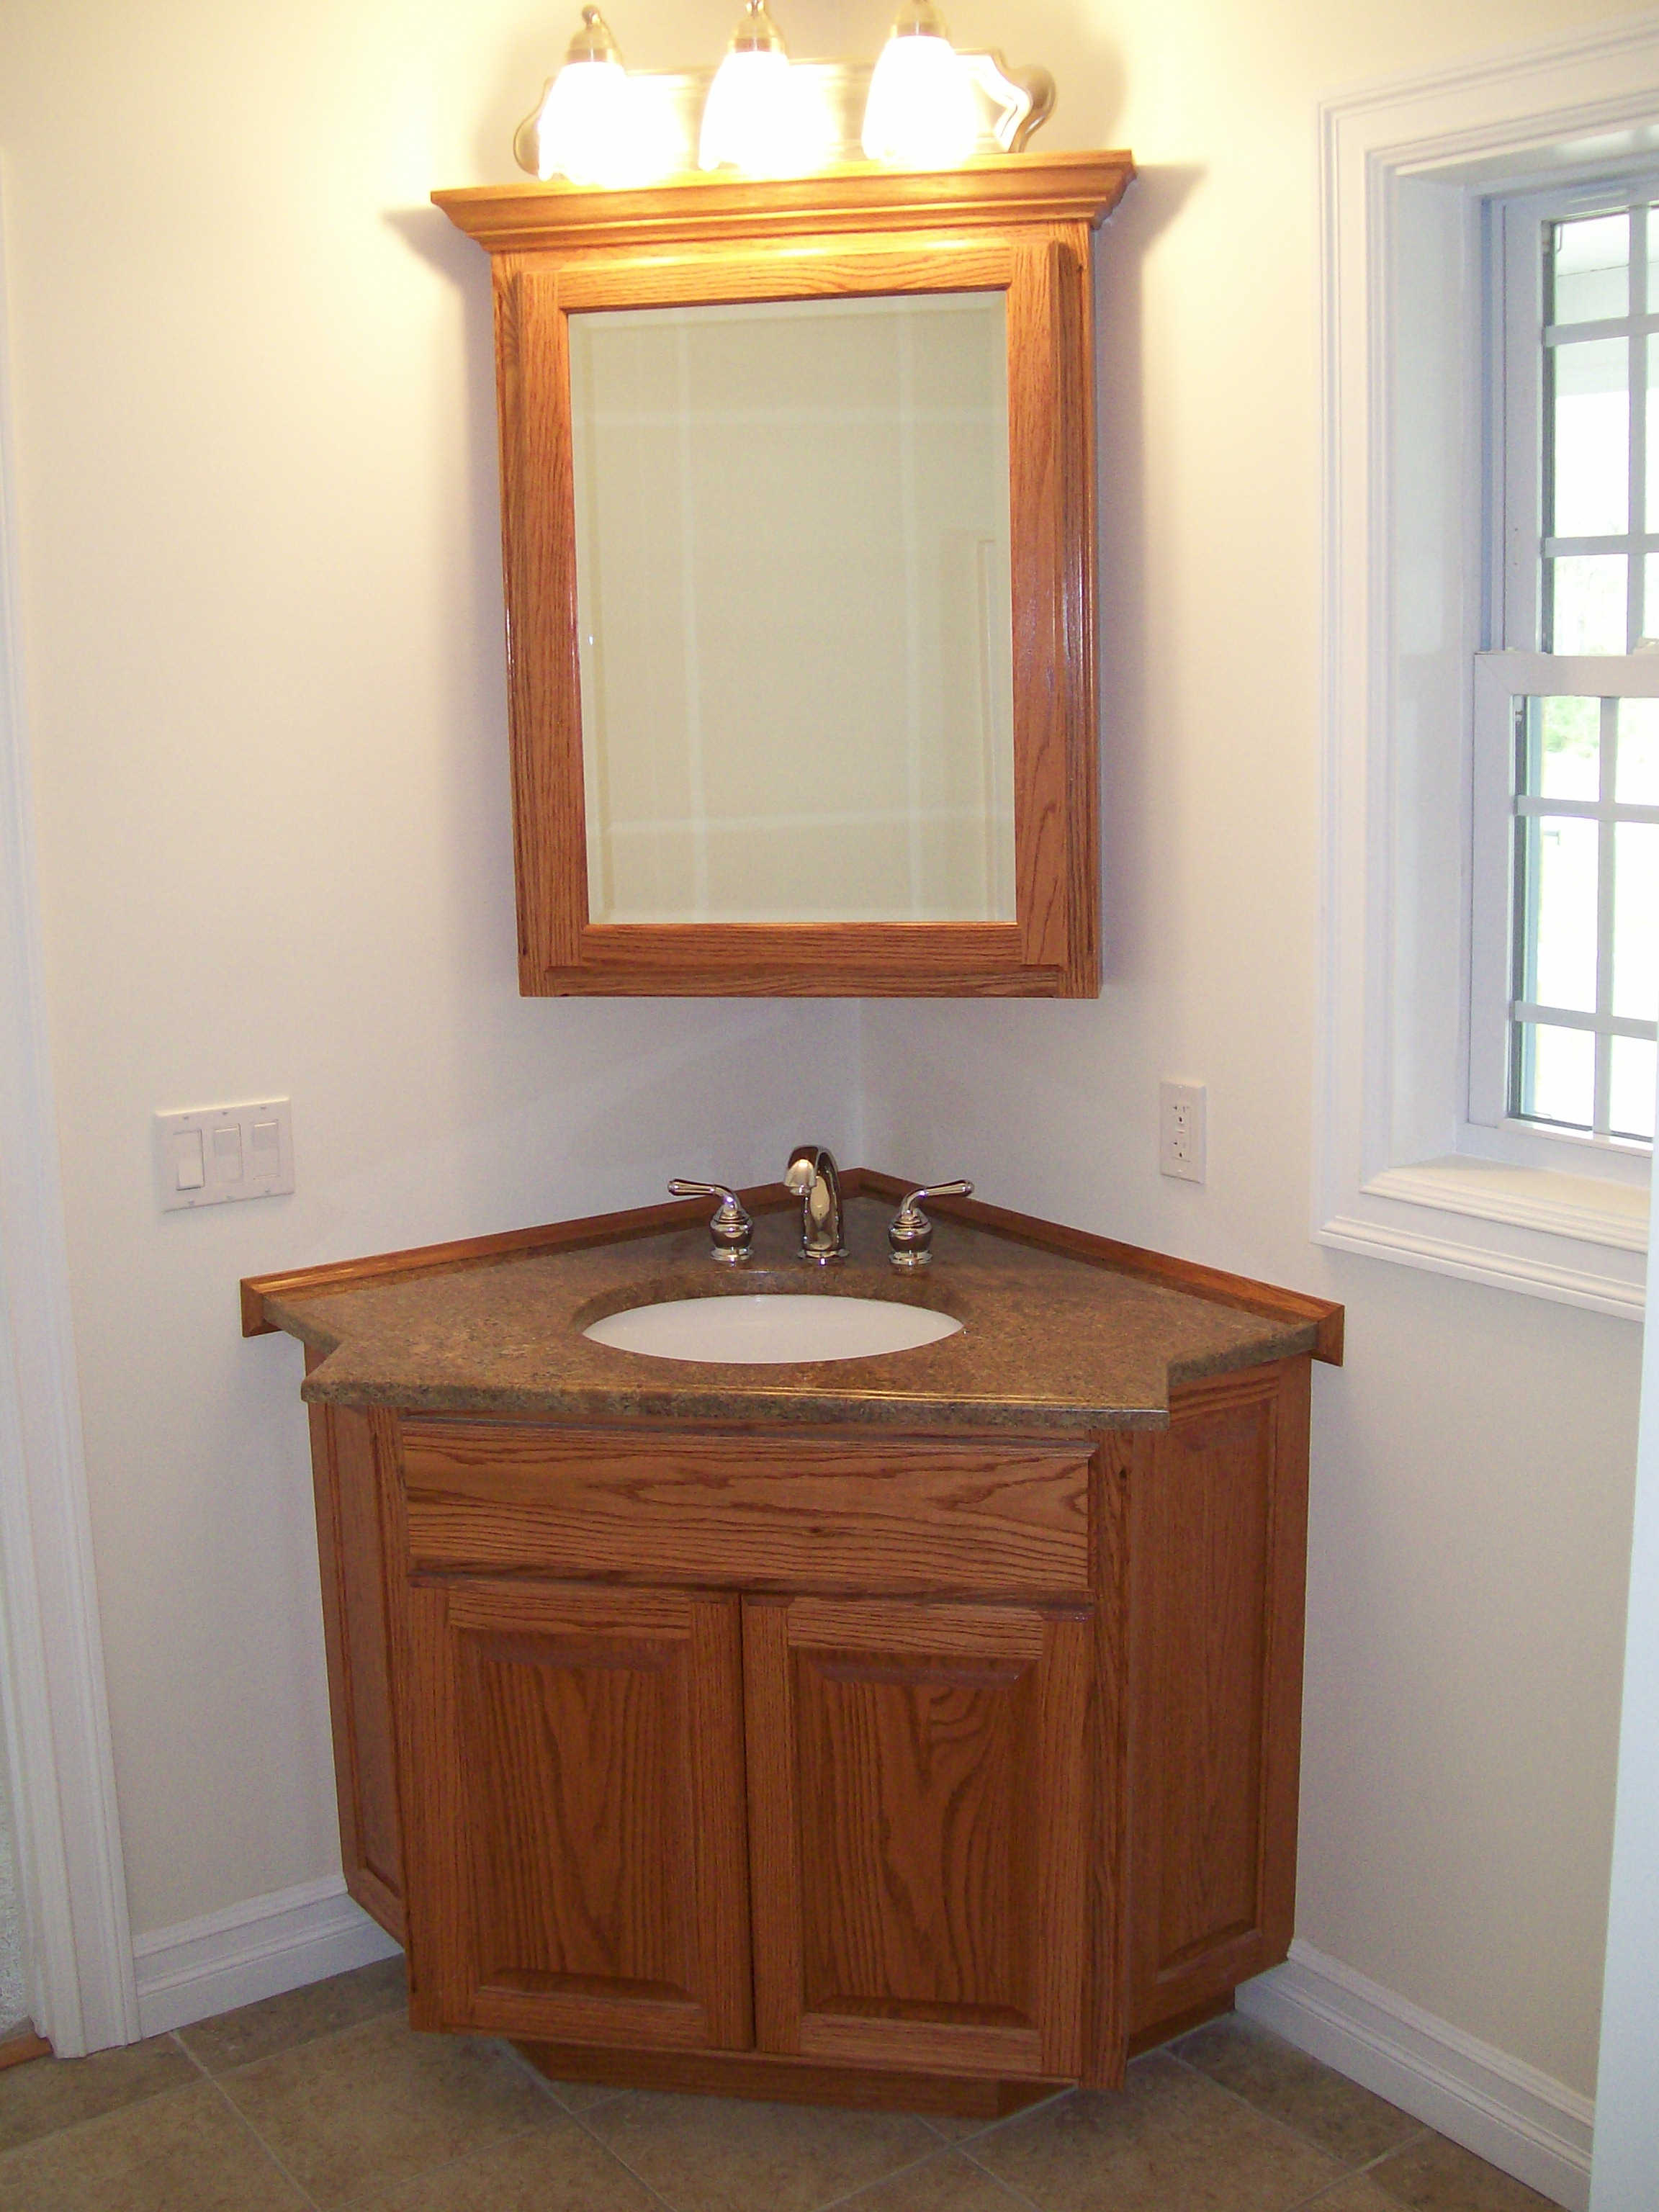 small bathroom corner vanity interior. round white wash basin in brown wooden bathroom vanity on BHHNROZ